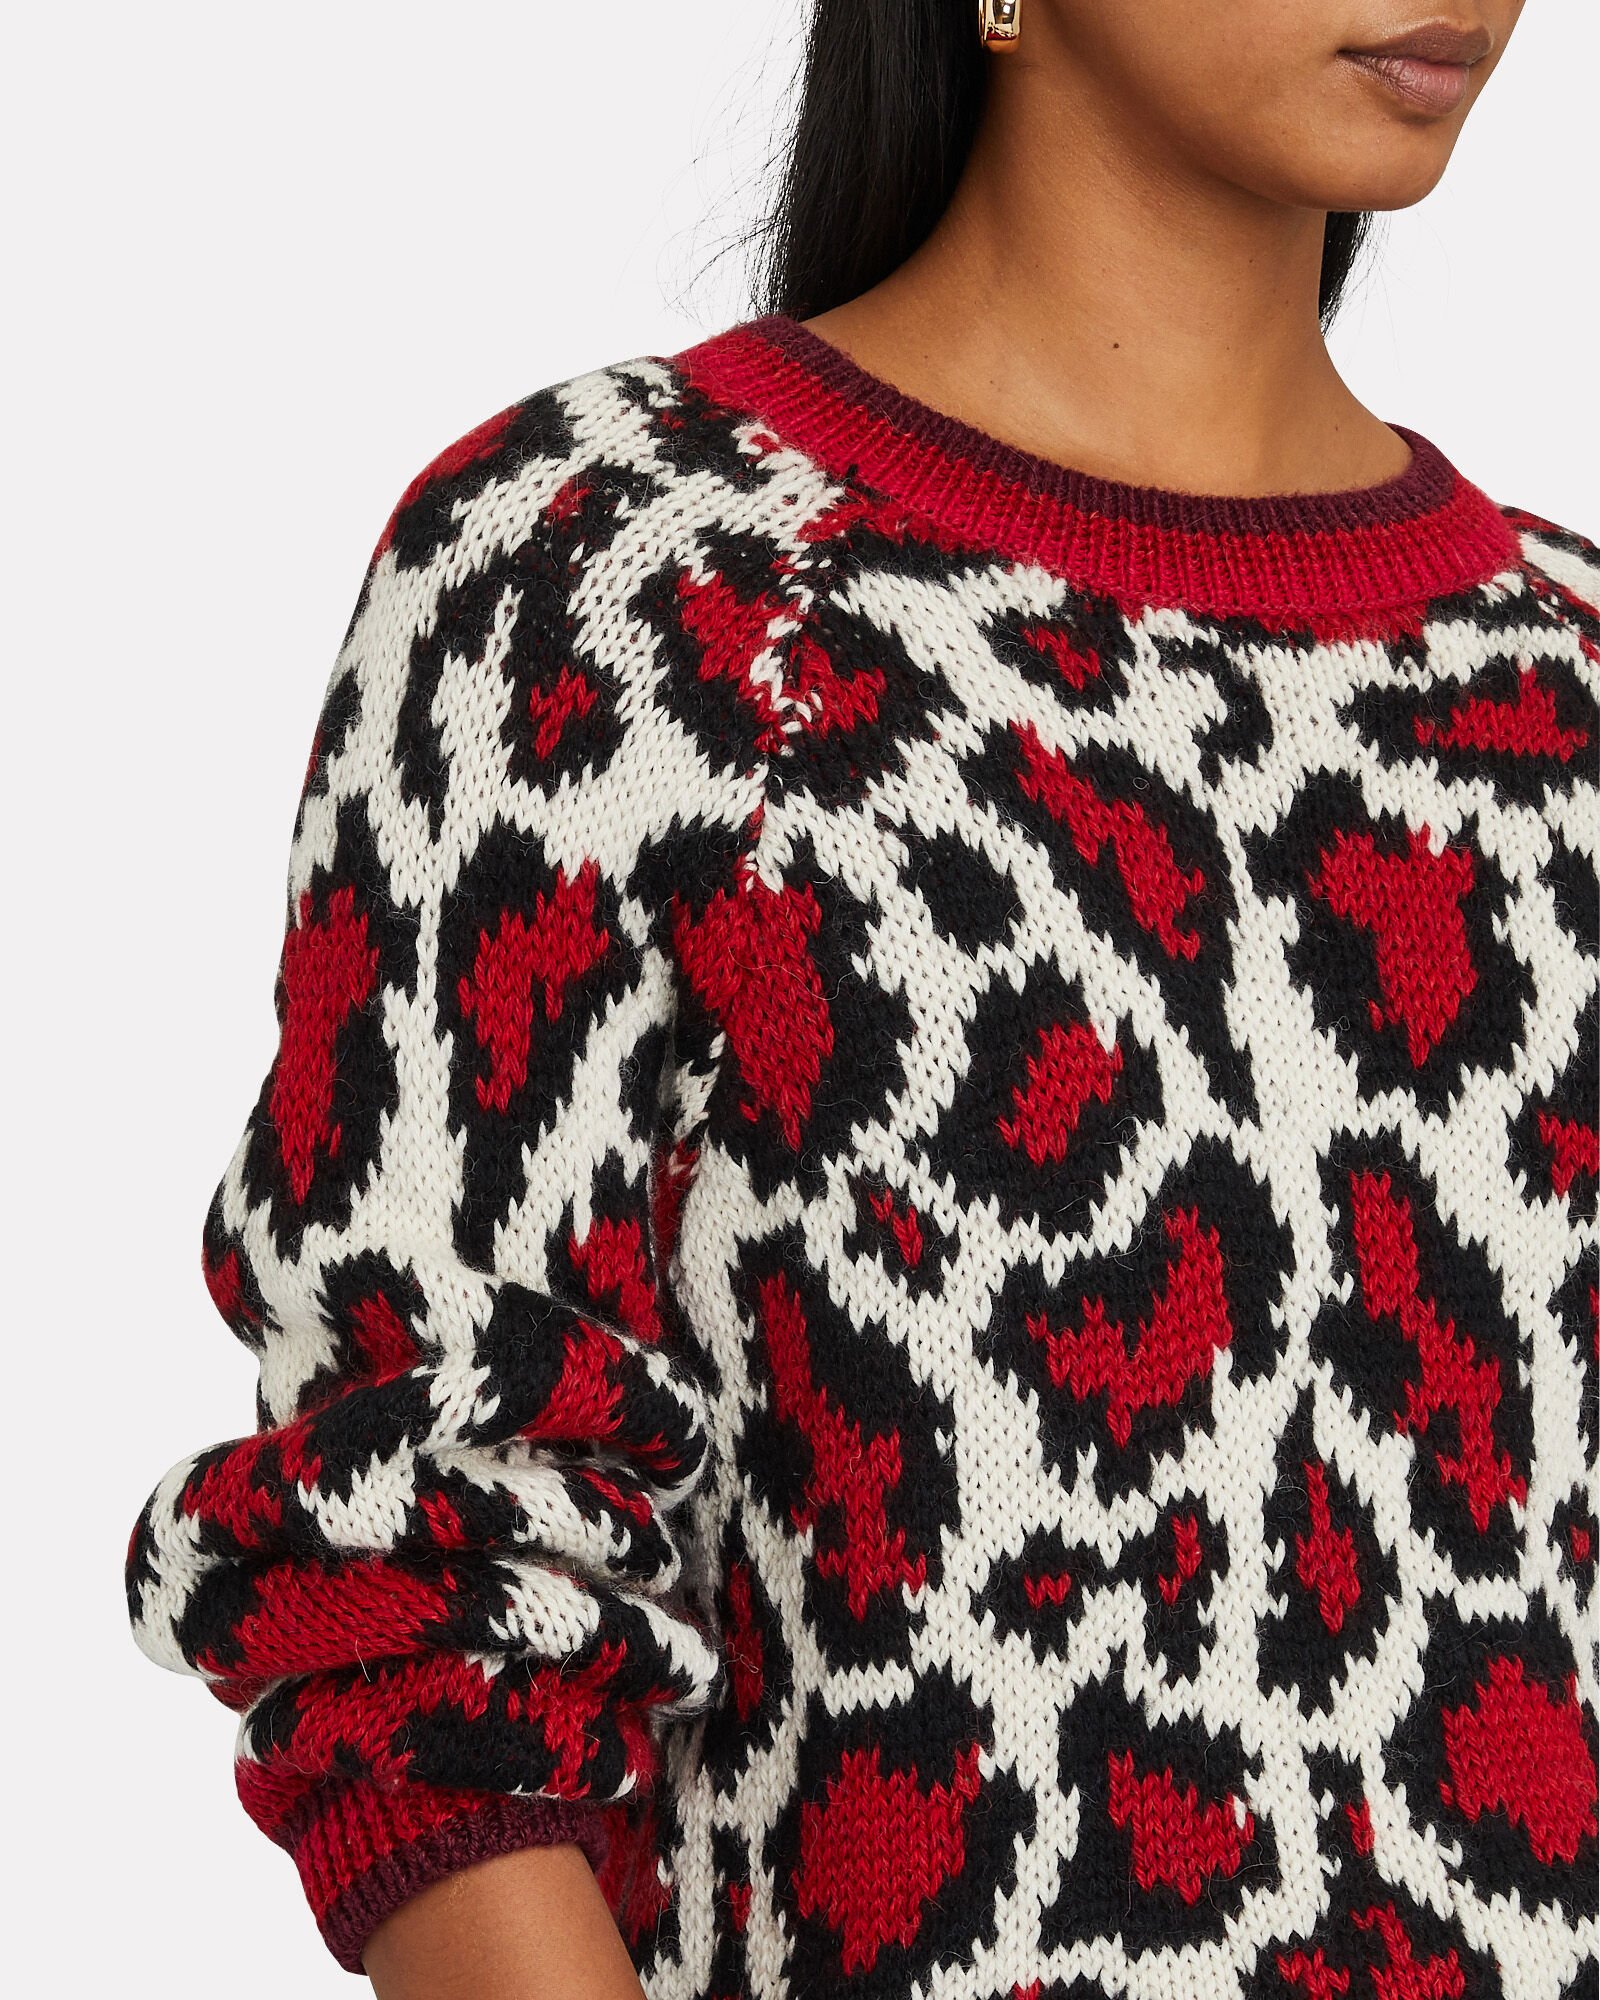 The Boat Square Leopard Sweater, IVORY/RED/BLACK, hi-res